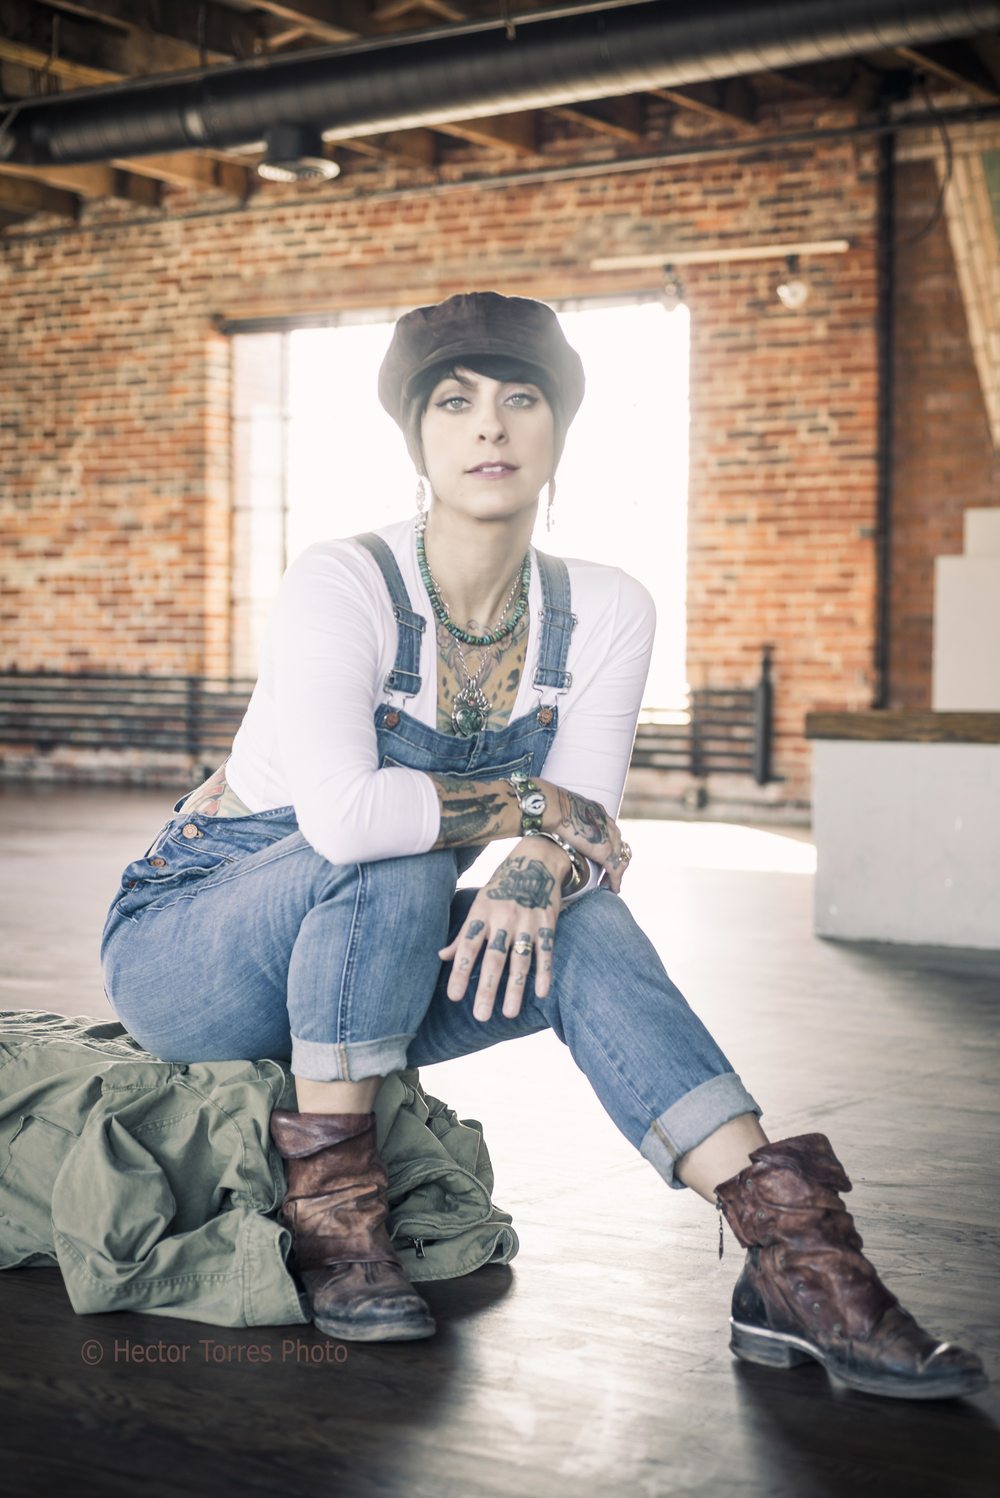 Danielle colby sexy pics-8367